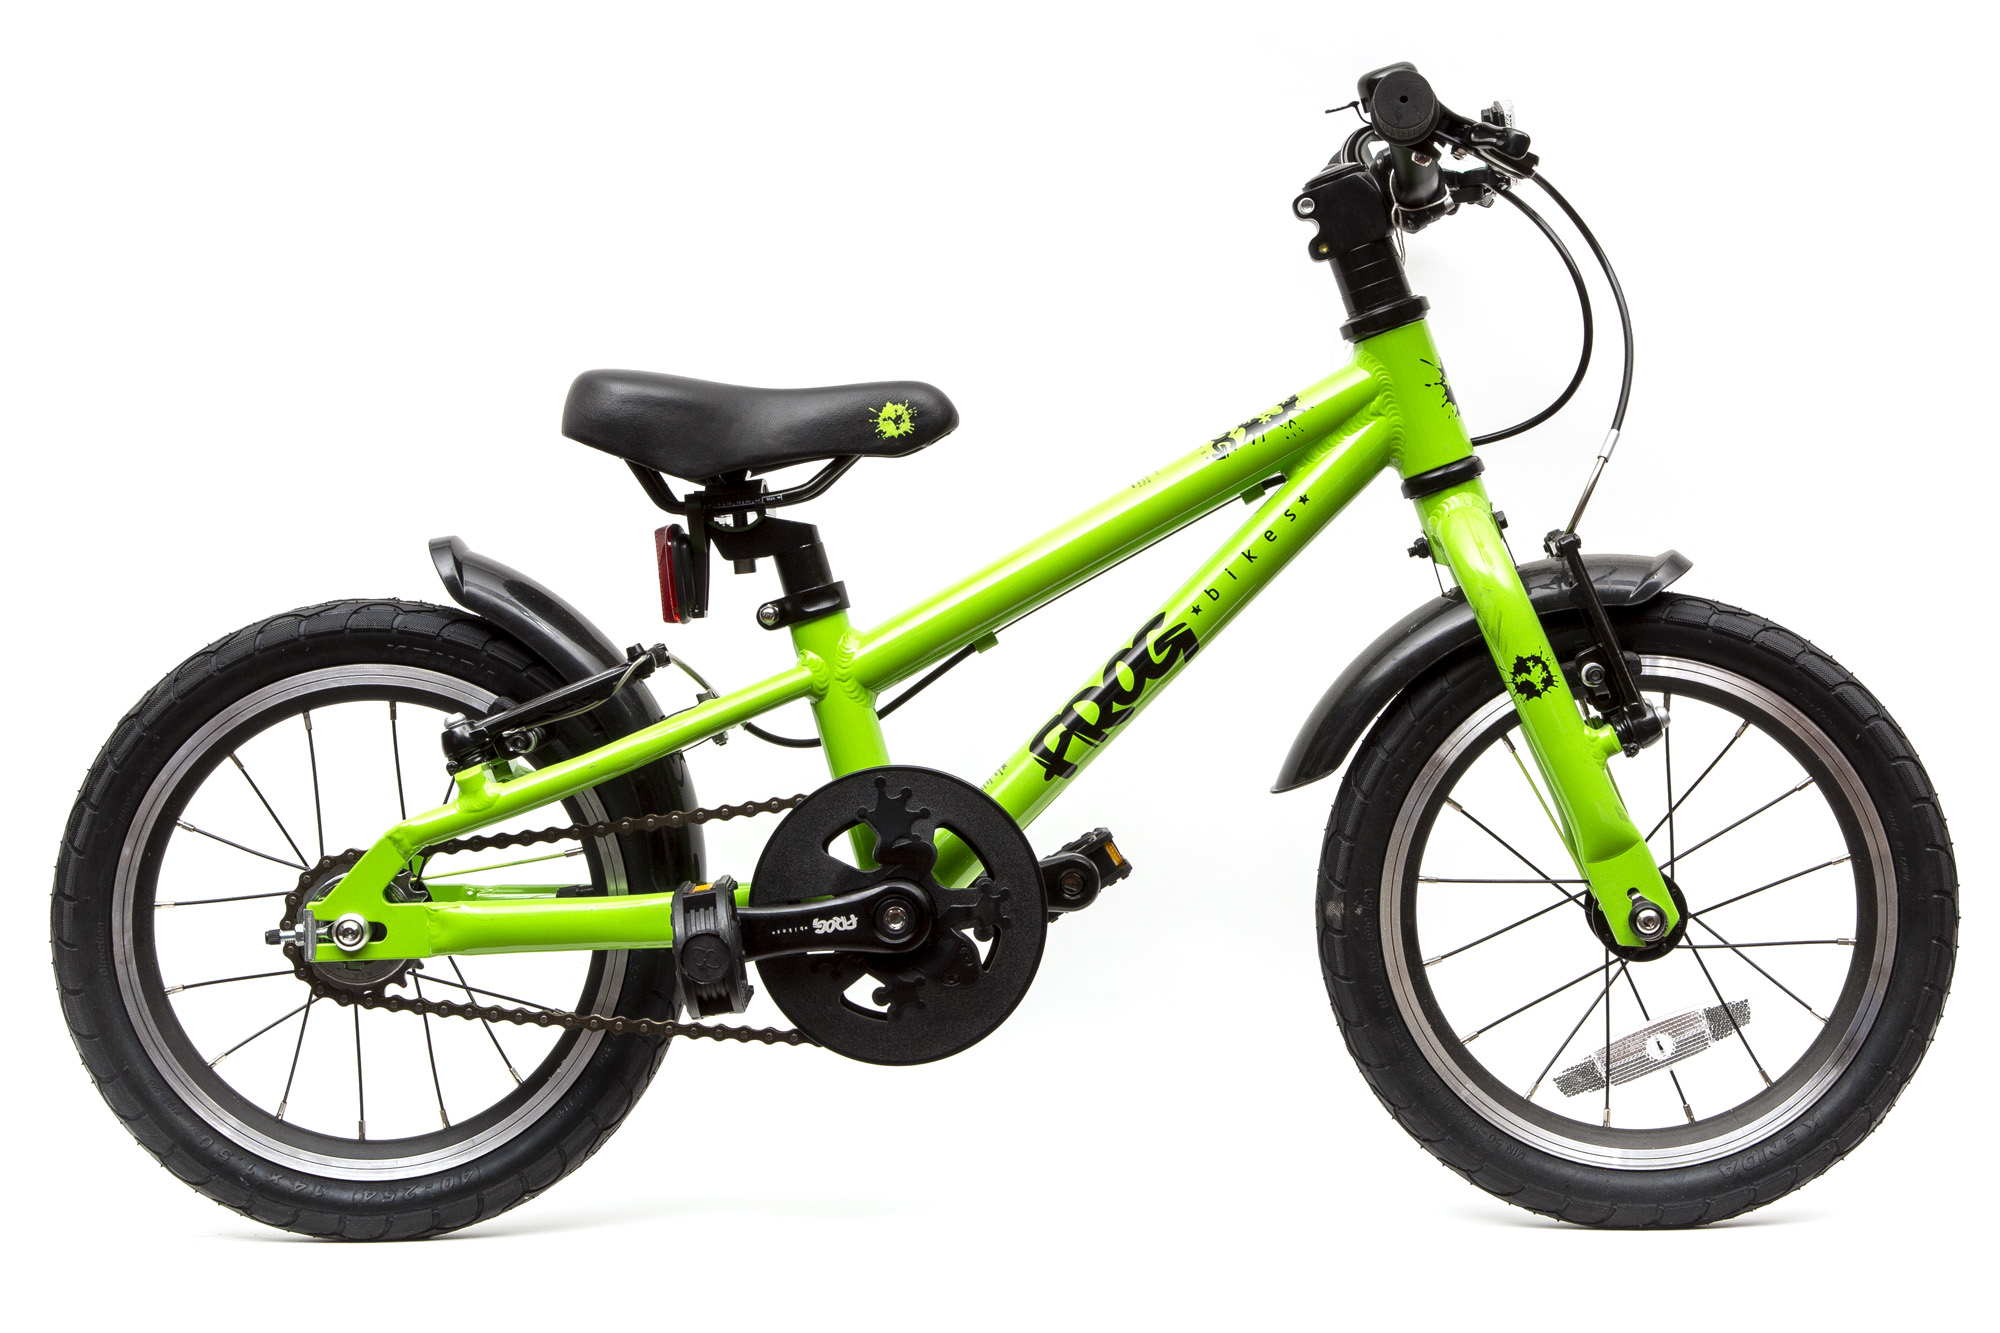 Frog 4 In Green - £180 // Was £240